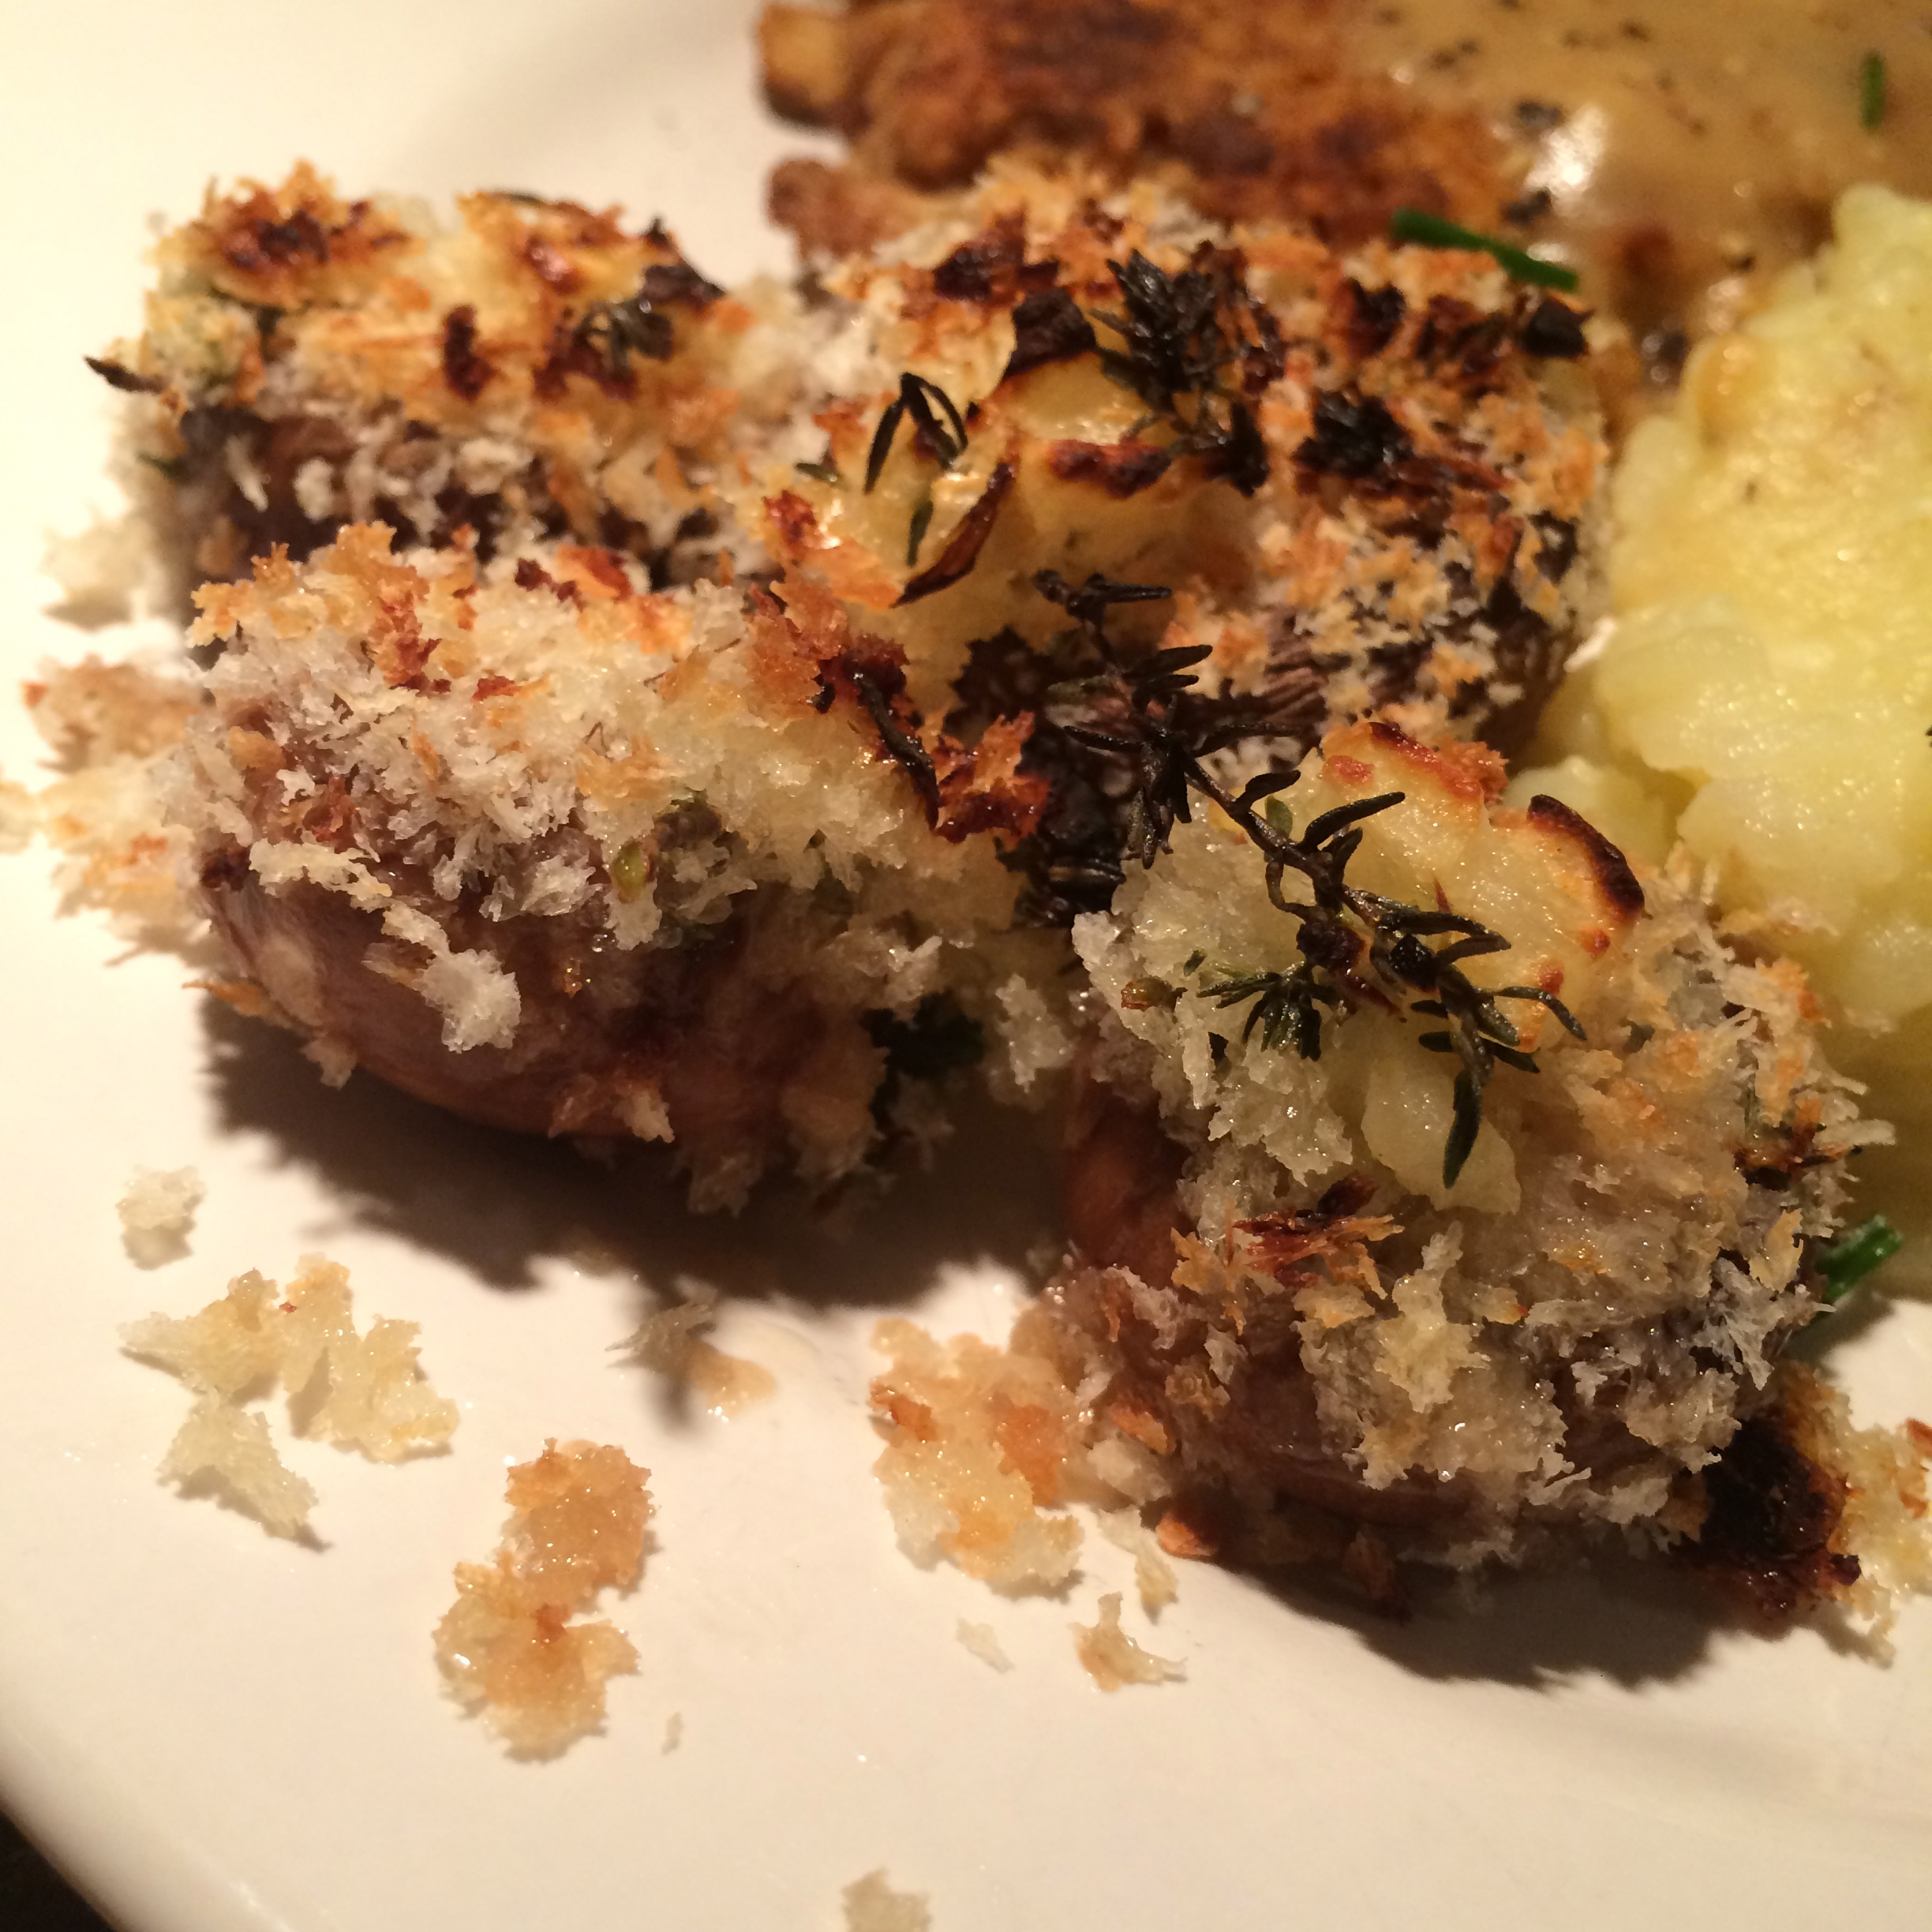 Thyme and Garlic Stuffed Mushrooms